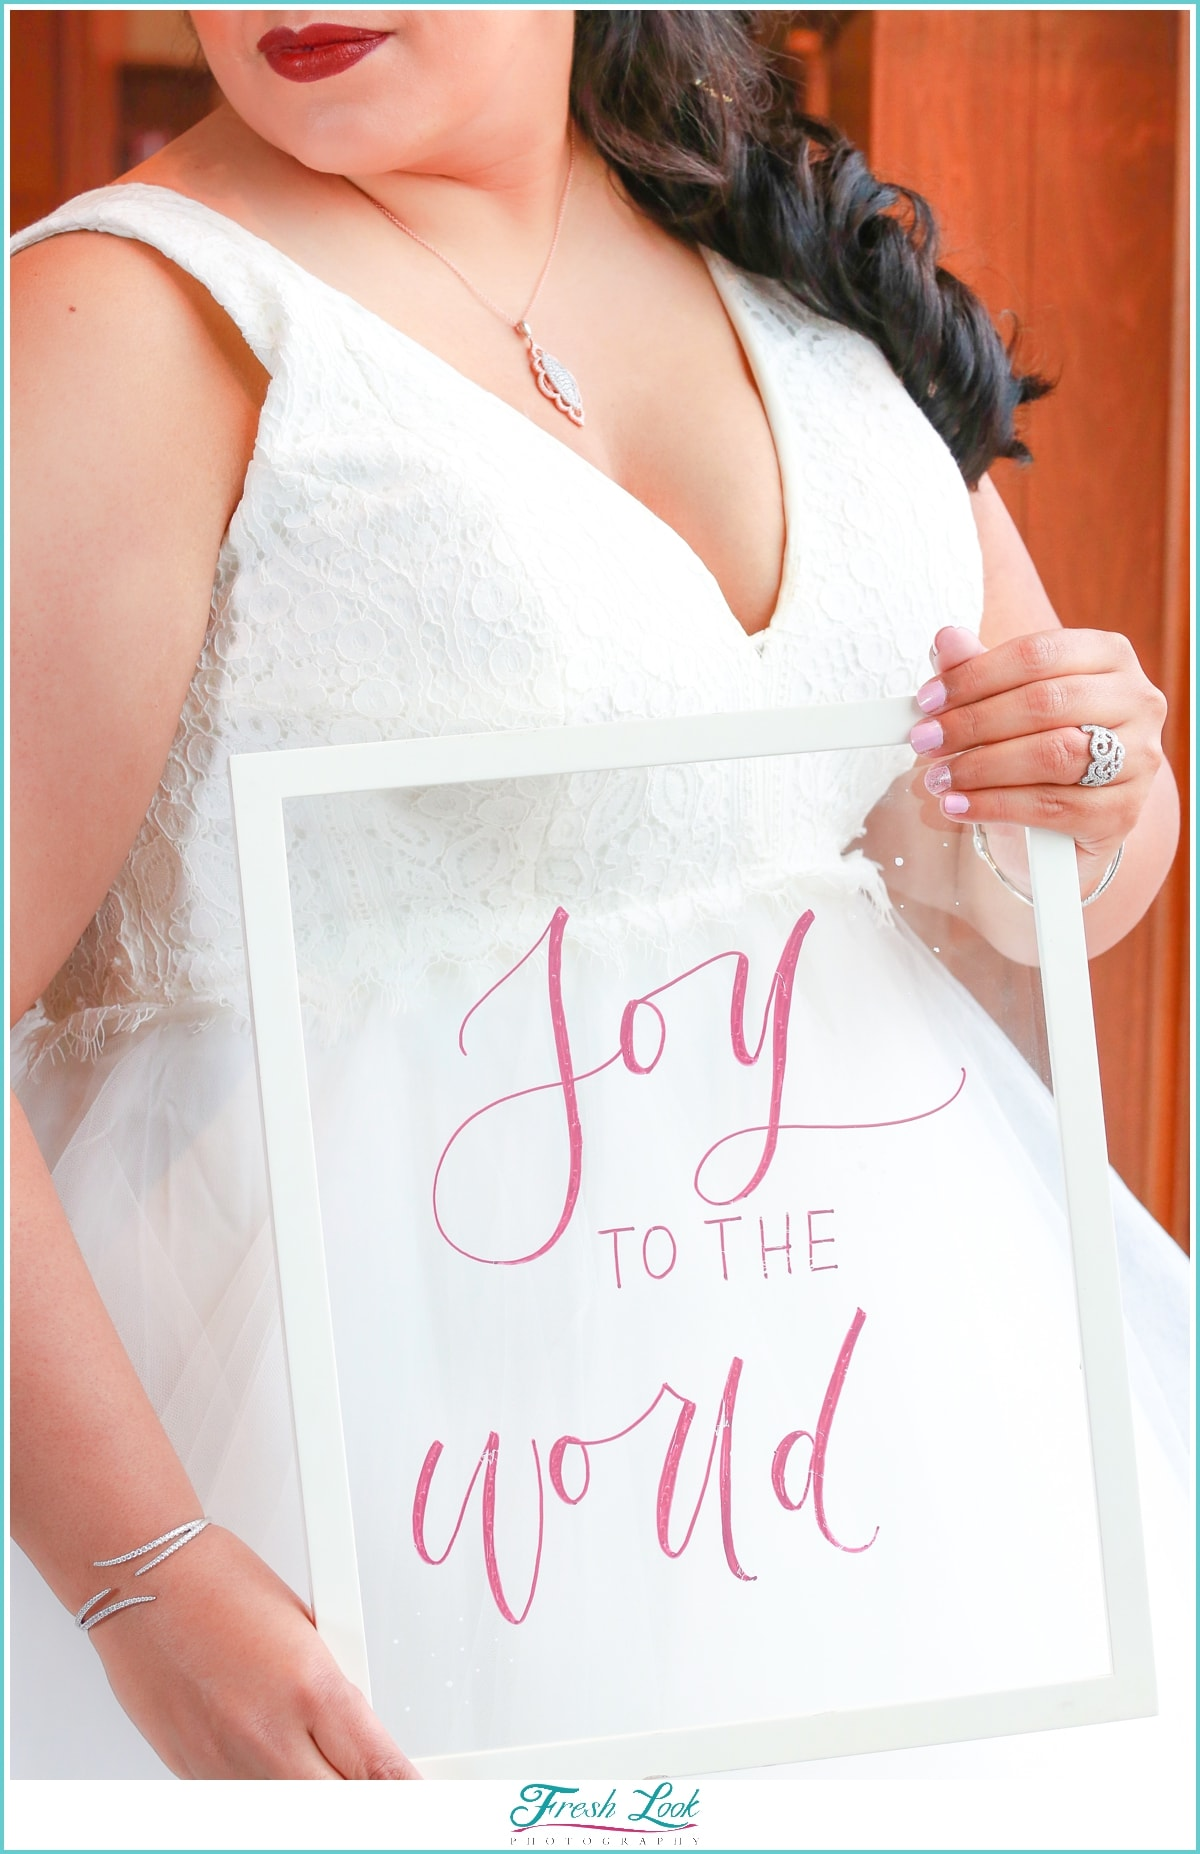 Joy to the World calligraphy sign